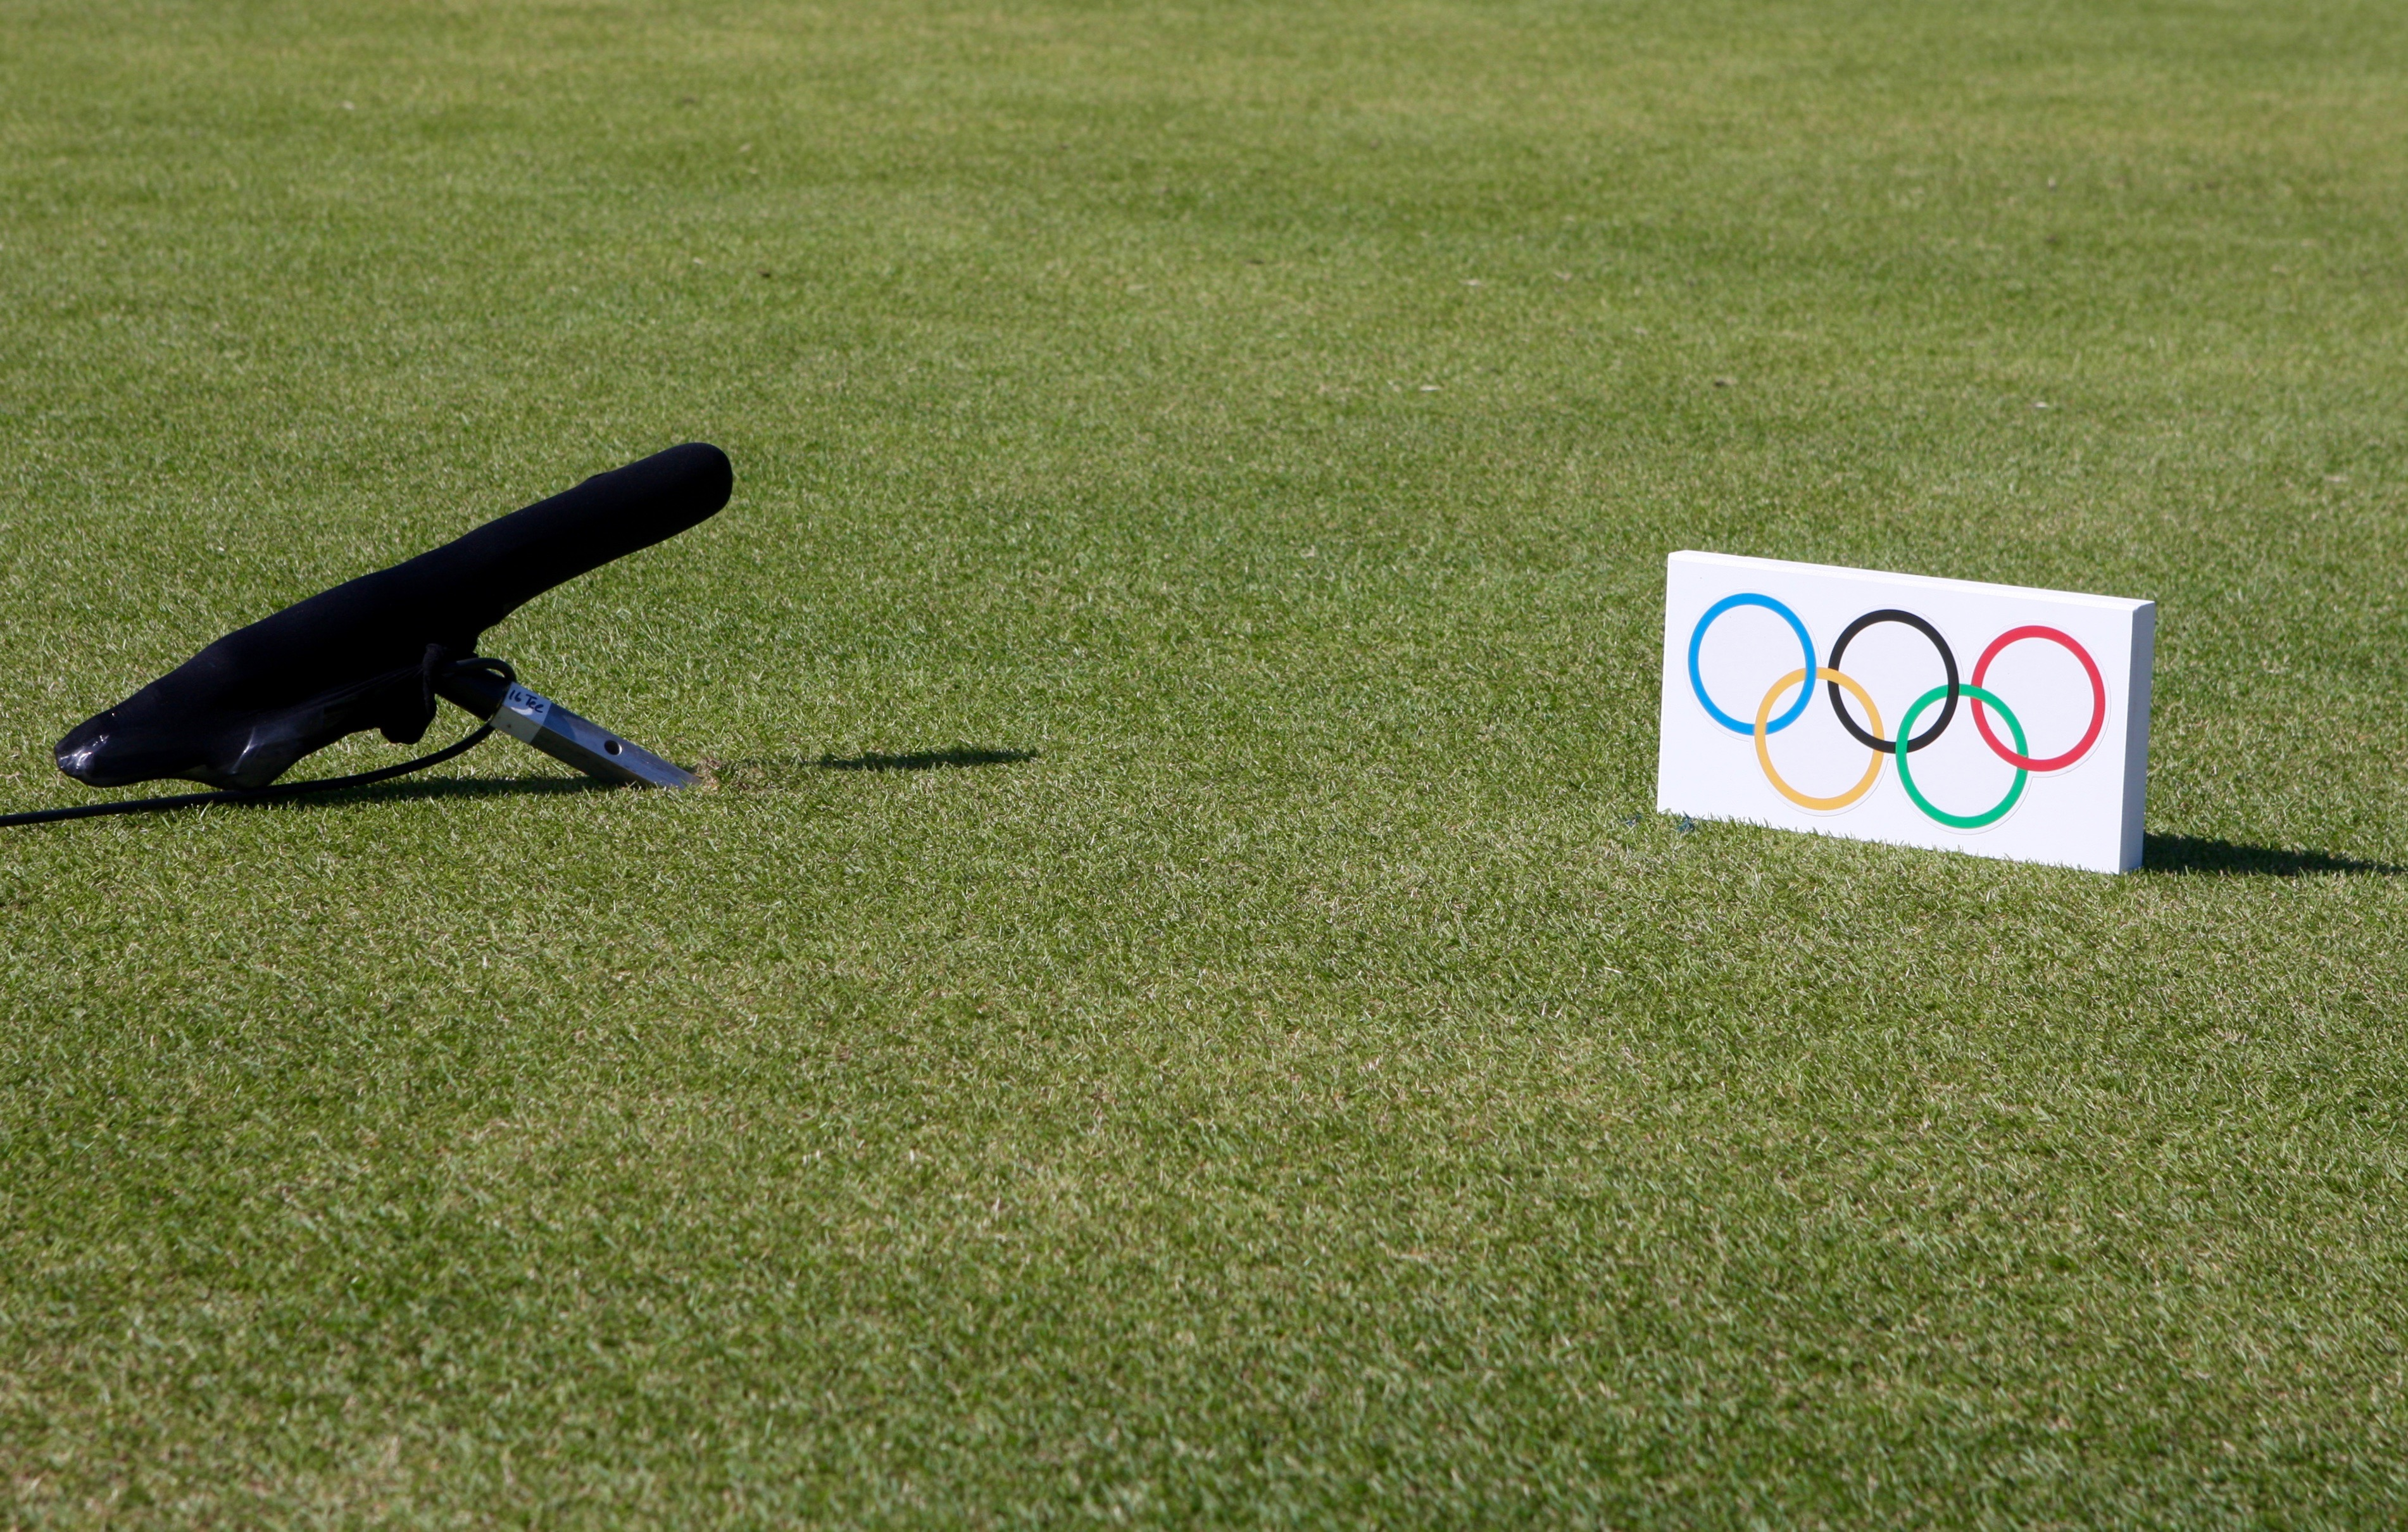 Tee box mics are all over the course to capture the sounds of golf's return to the Olympics.